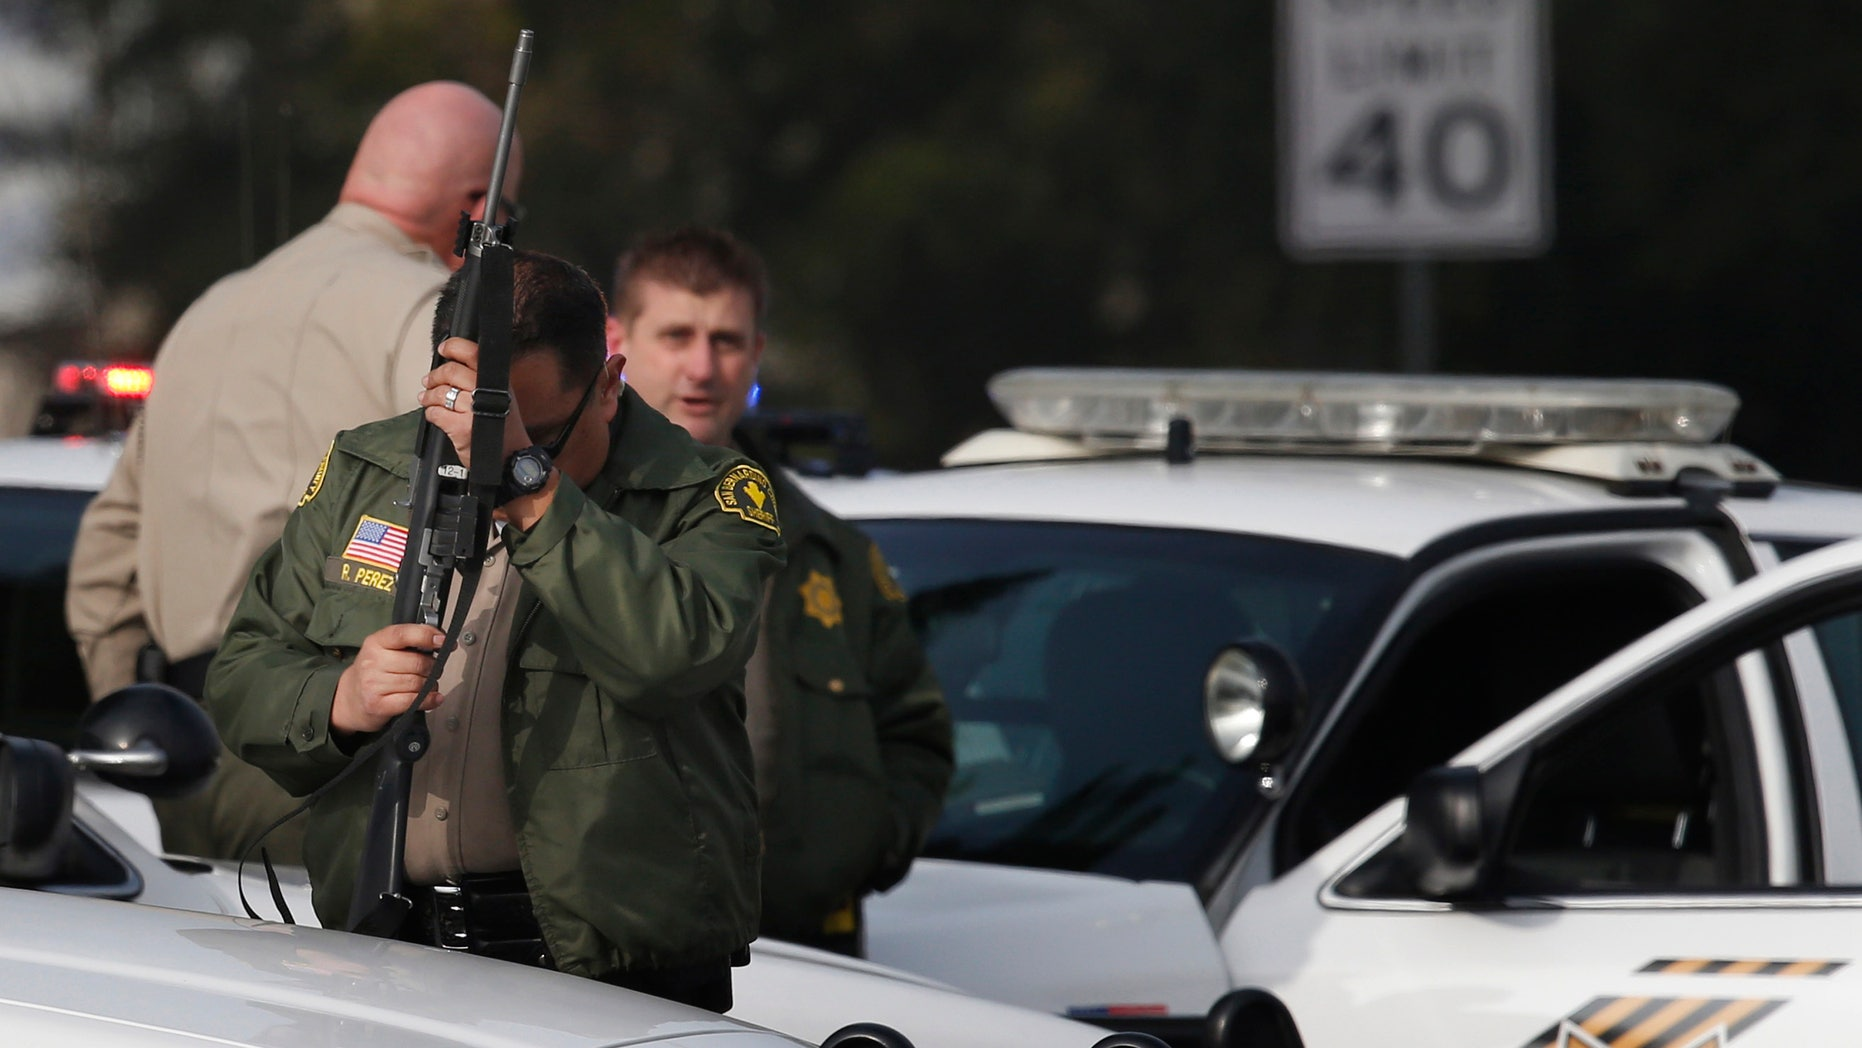 A San Bernardino County sheriff's deputy stands guard near the area where a shooting took place in Riverside, Calif, Thursday, Feb. 7, 2013. Police launched a massive manhunt for a former Los Angeles officer suspected of going on a killing spree, slaying a couple over the weekend, opening fire on two Los Angeles officers early Thursday and then ambushing two other police officers, killing one. (AP Photo/Jae C. Hong)